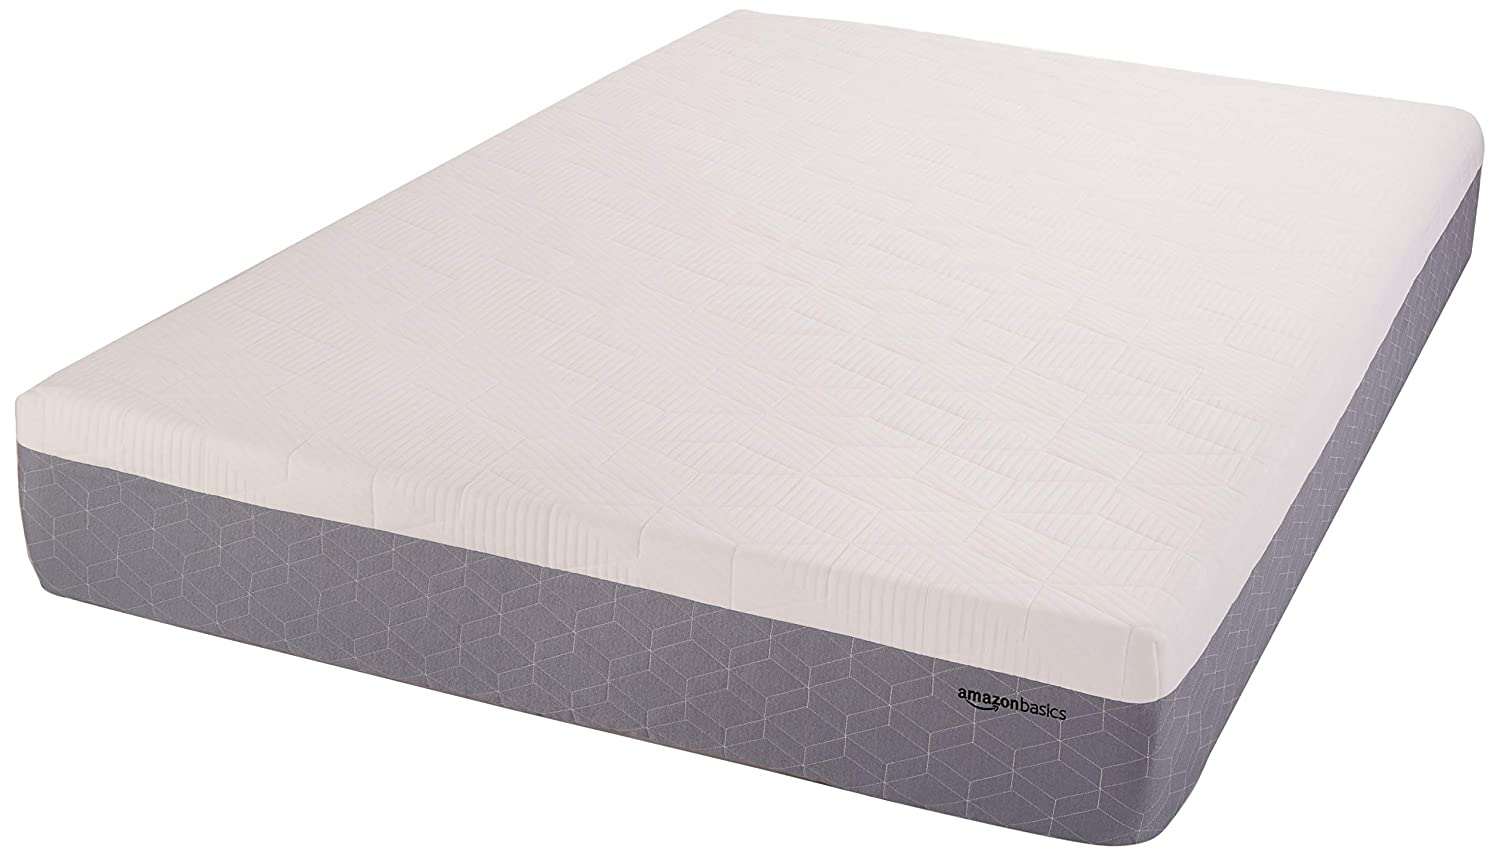 AmazonBasics Cooling Gel-Infused Memory Foam Mattress - Medium Firmness, CertiPUR-US Certified - 12-Inch, Queen